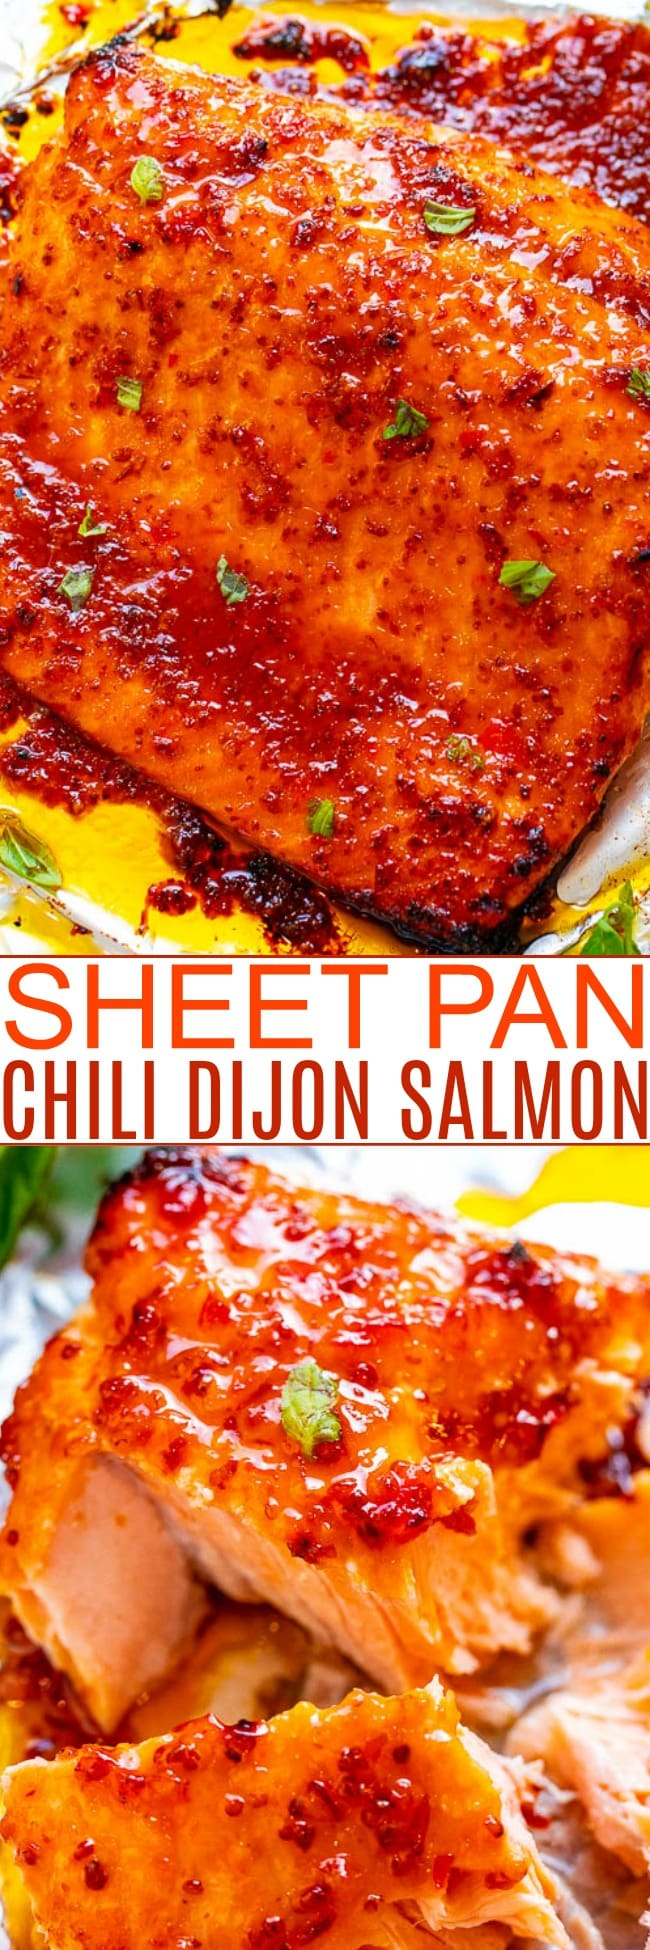 Sheet Pan Chili Dijon Salmon – A 5-ingredient salmon recipe that tastes 5-STARS and is ready in 25 minutes!! Loaded with layers of incredible flavor from two types of chili sauce, Dijon mustard, and honey! You'll LOVE this salmon recipe!!